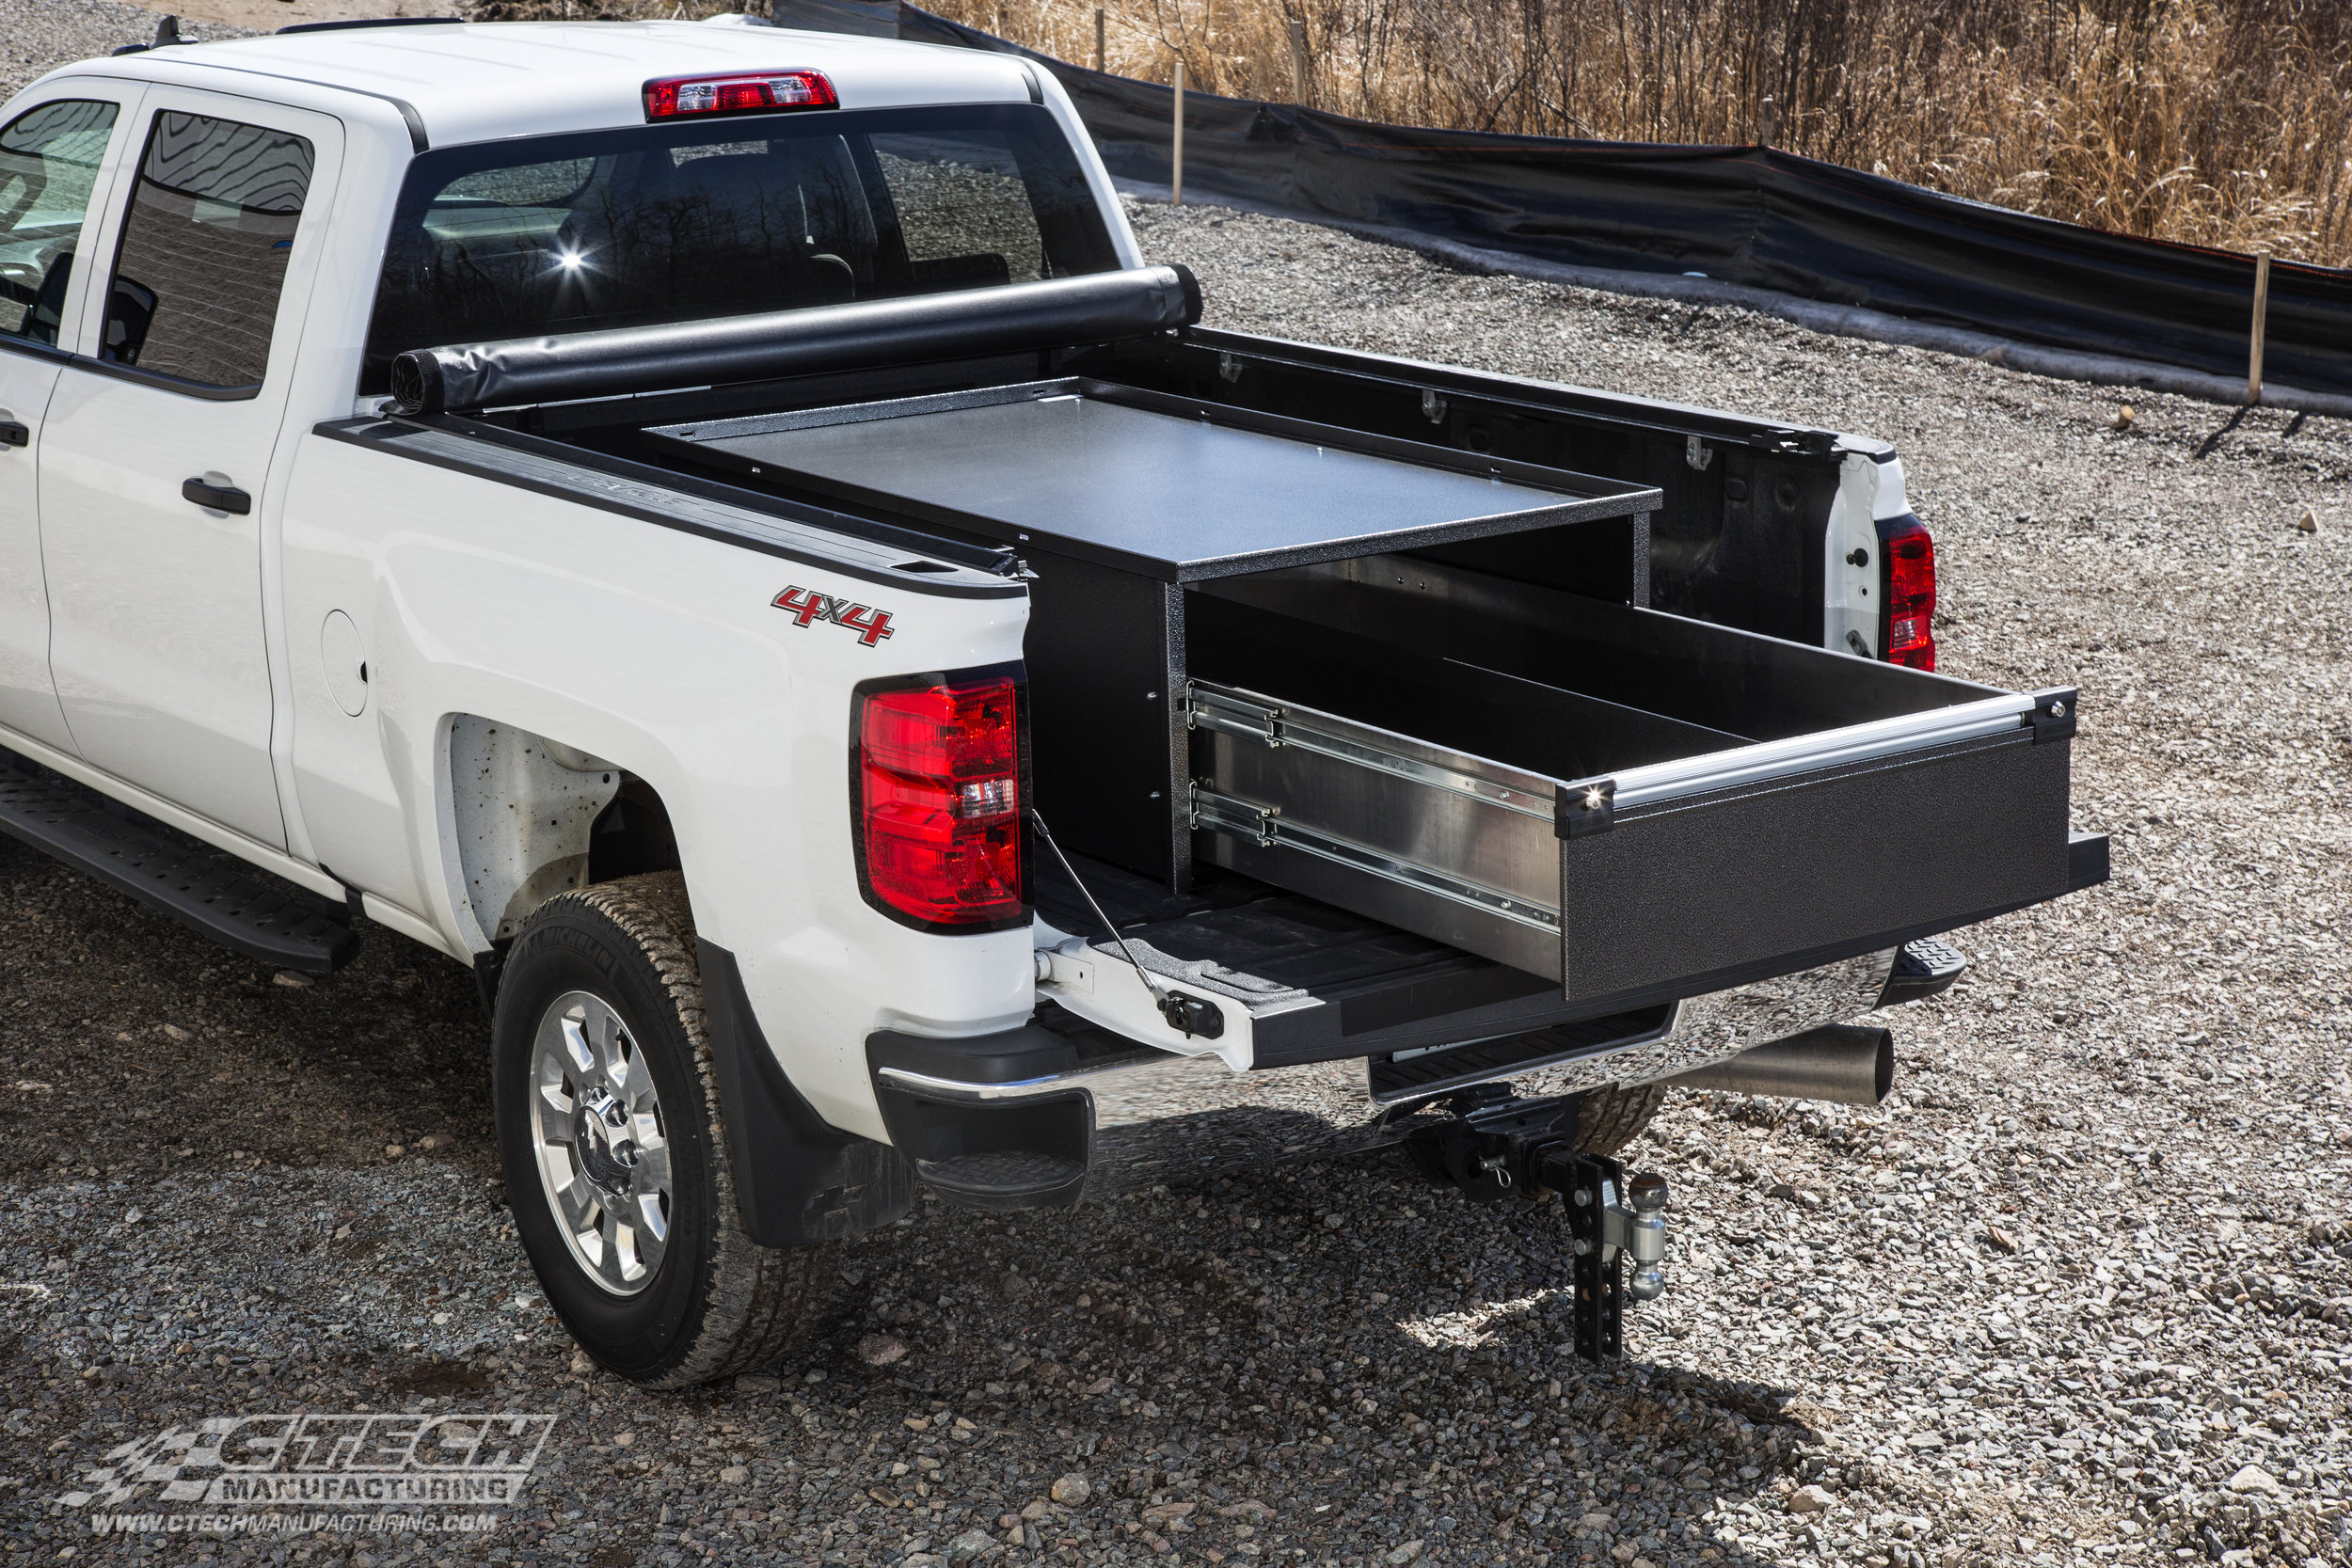 Keeping items in your truck bed stored, secured, and accessible is easy with a CTech drawer inserts. This locking, full-extension drawer unit was developed to fit in the bed of a Chevy pickup.